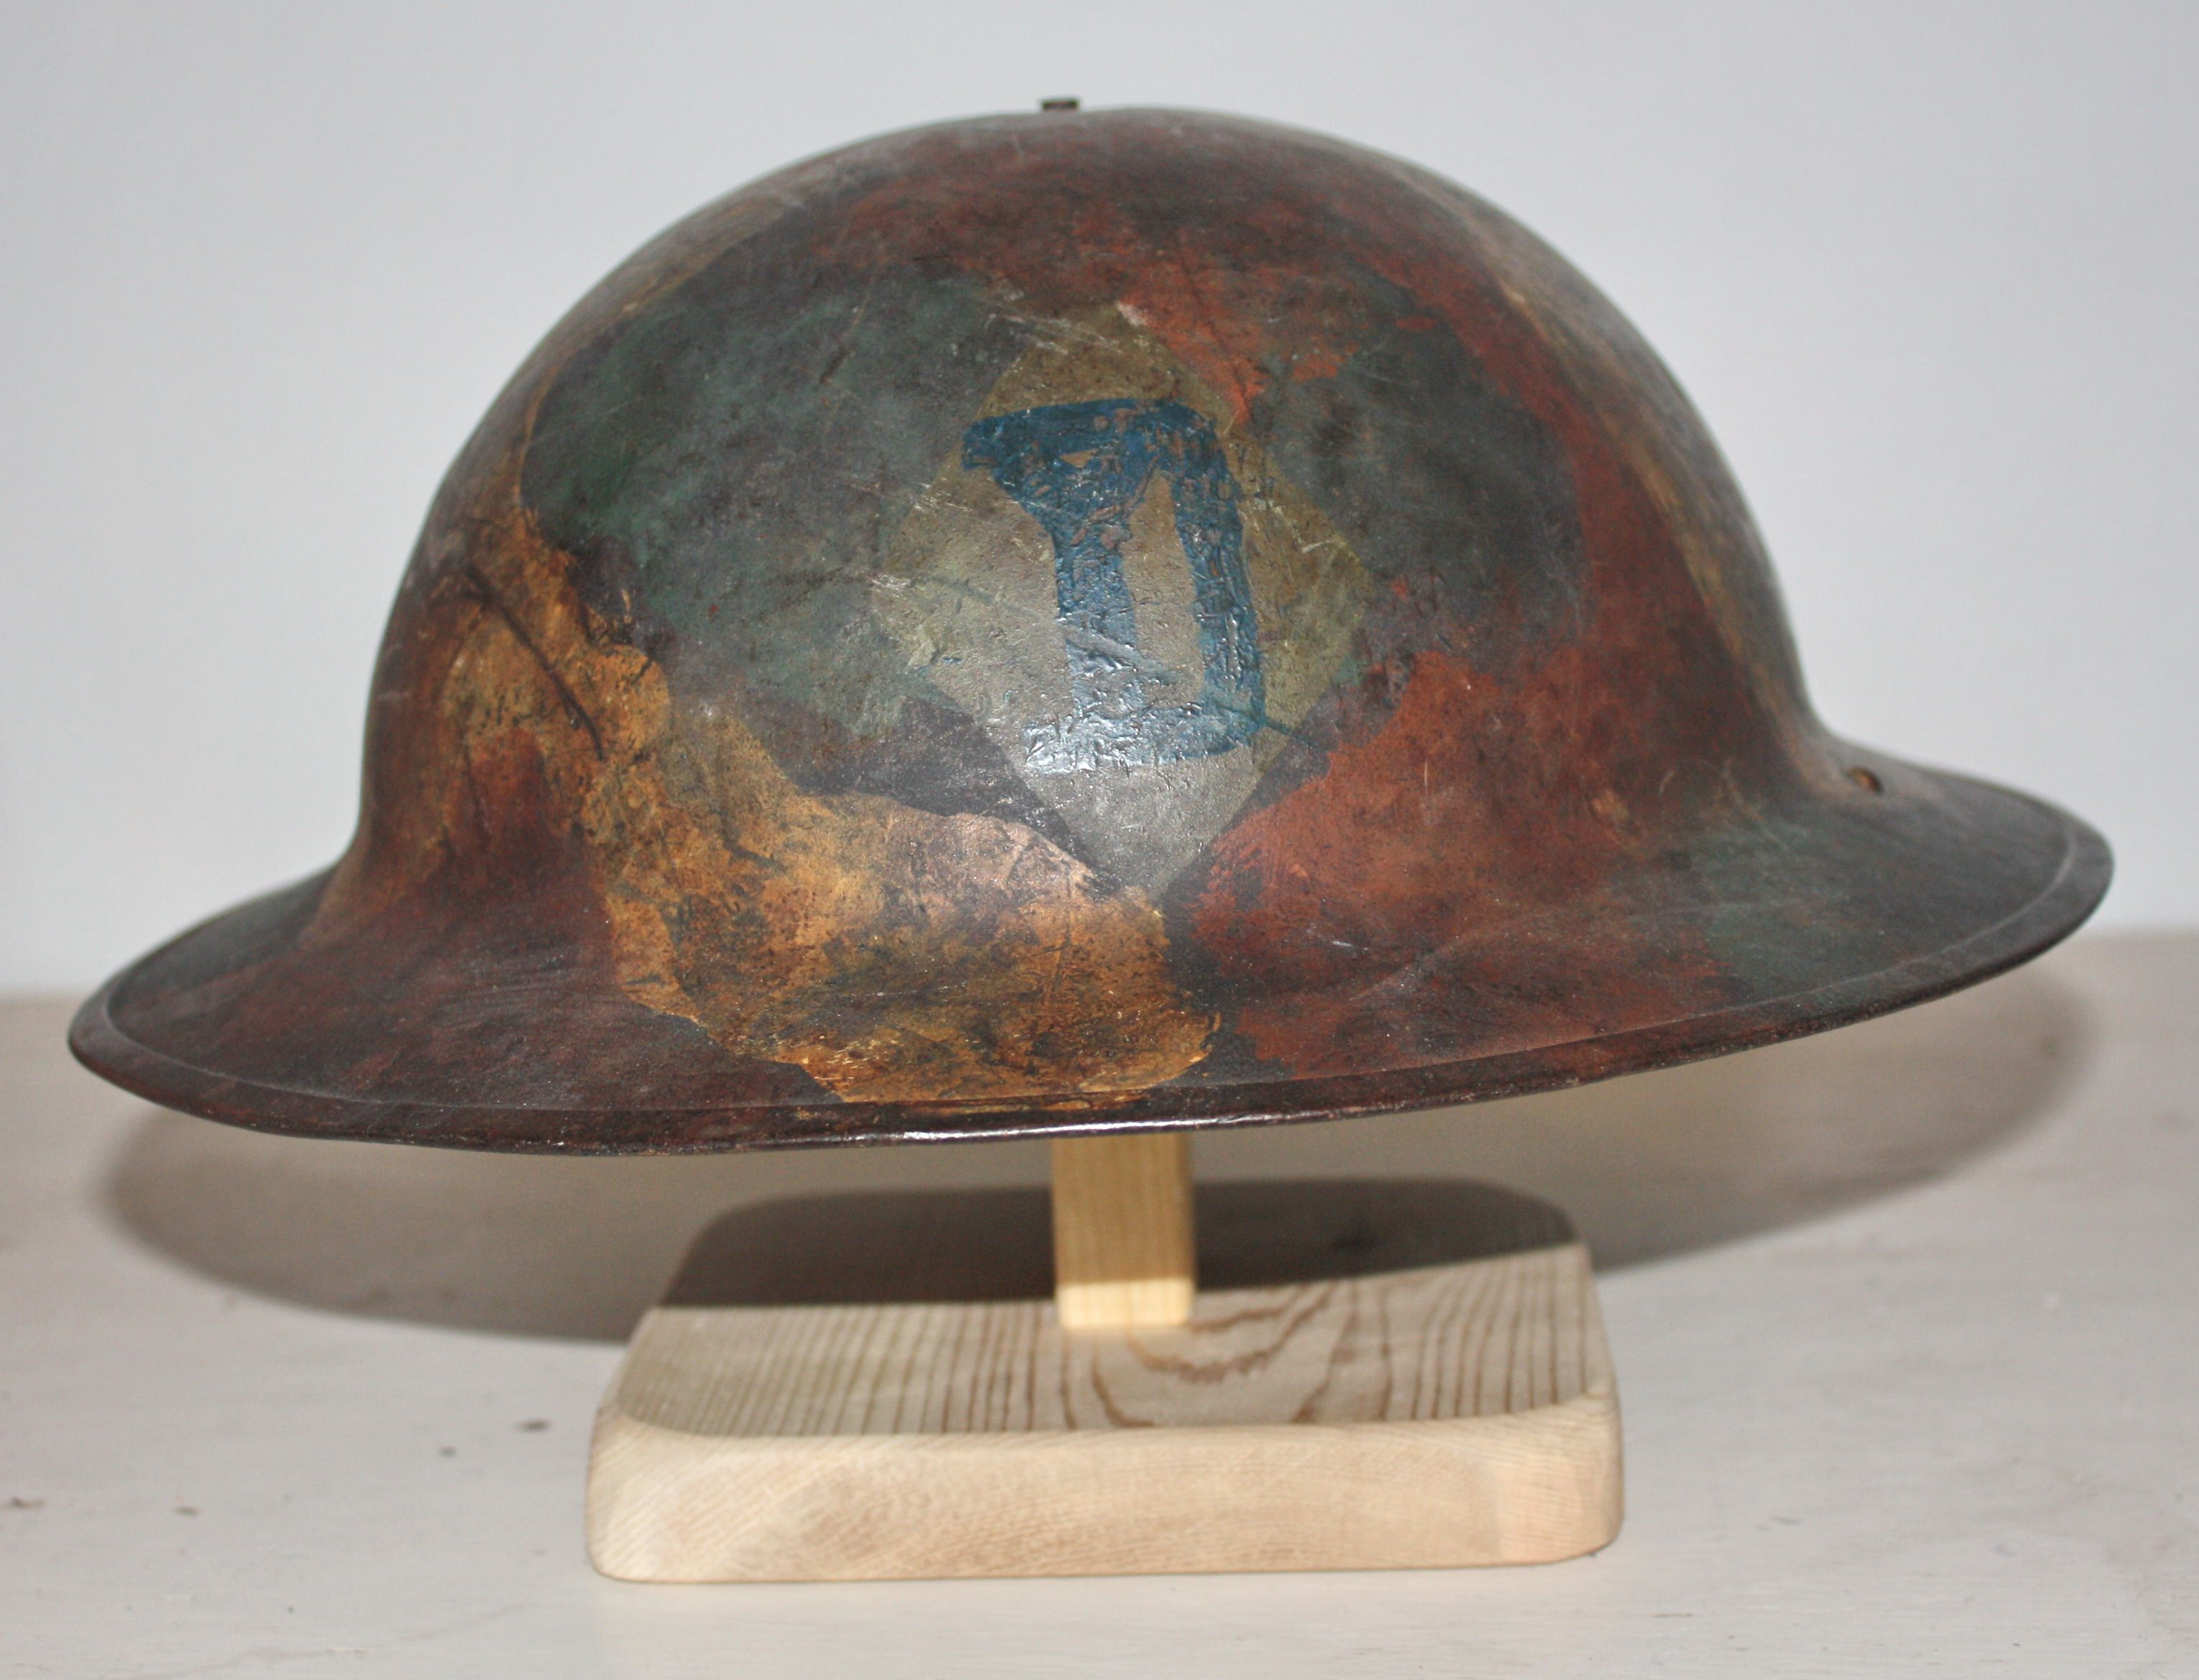 Us M1917 Painted Helmet With 26th Division World War One